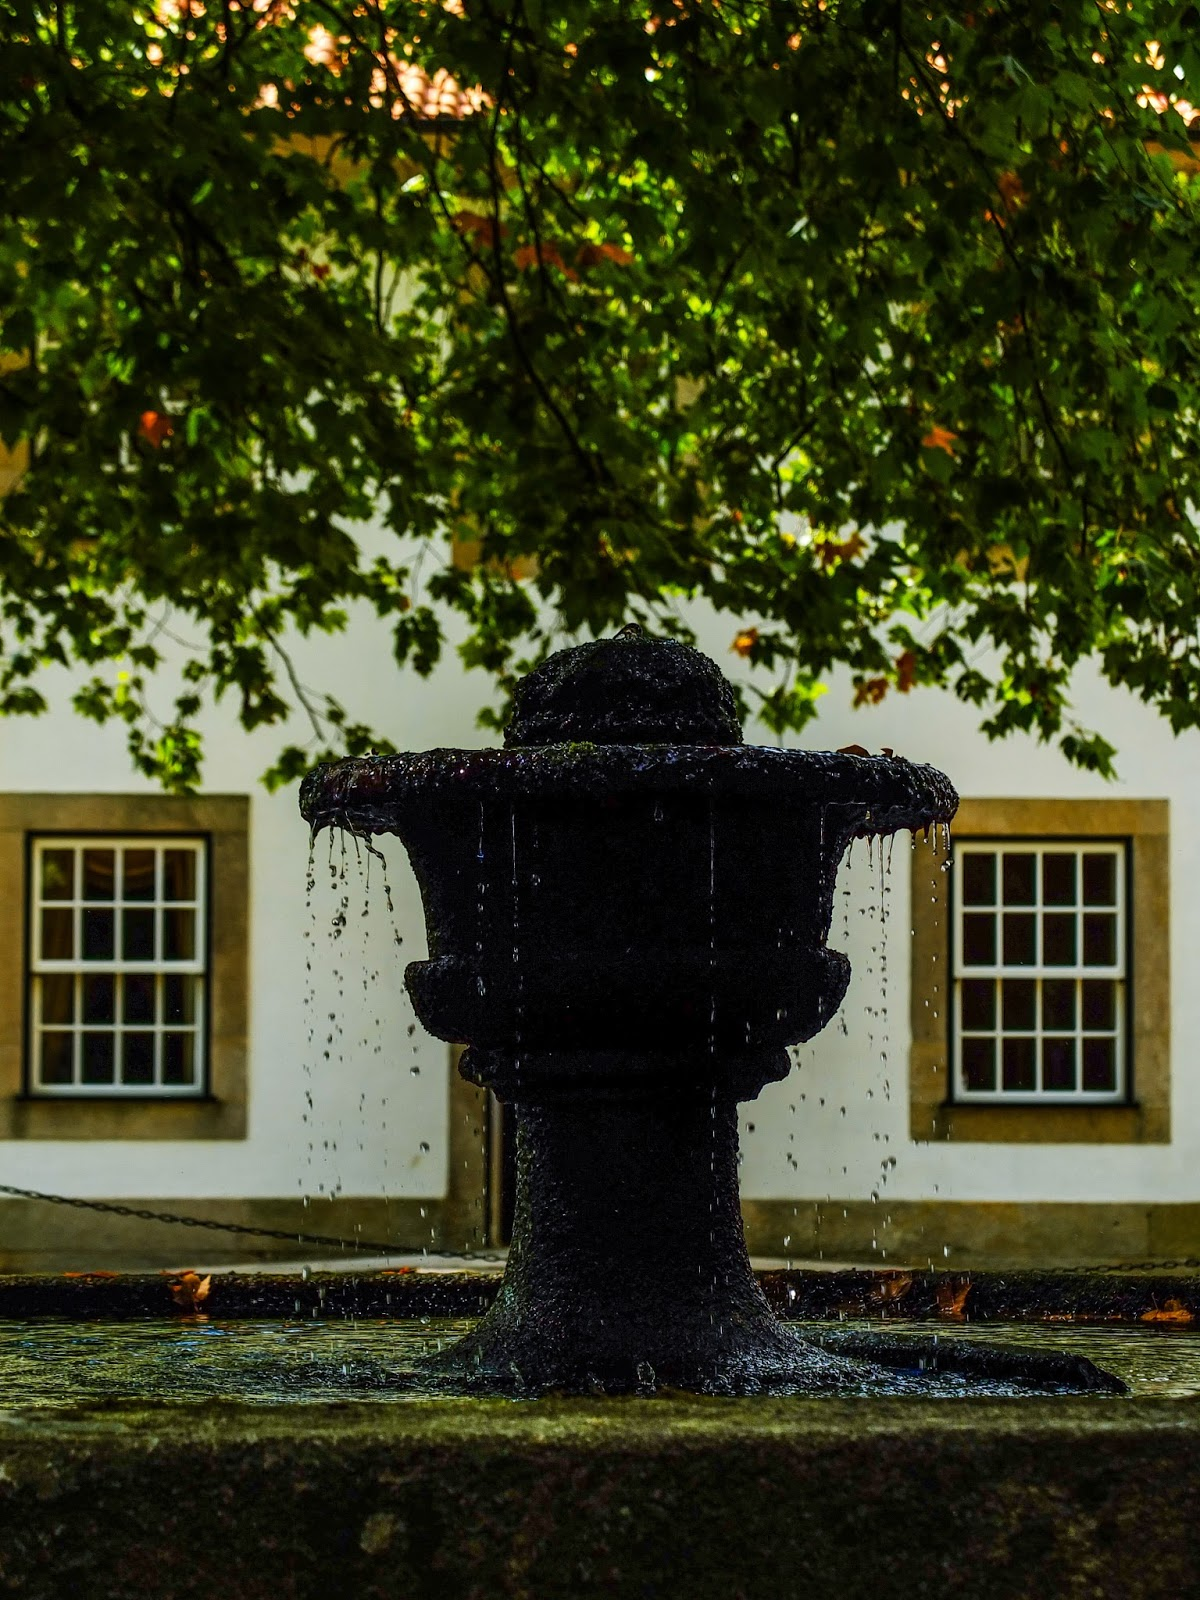 Stone fountain under a maple tree outside a white building with two sash windows in Porto, Portugal.